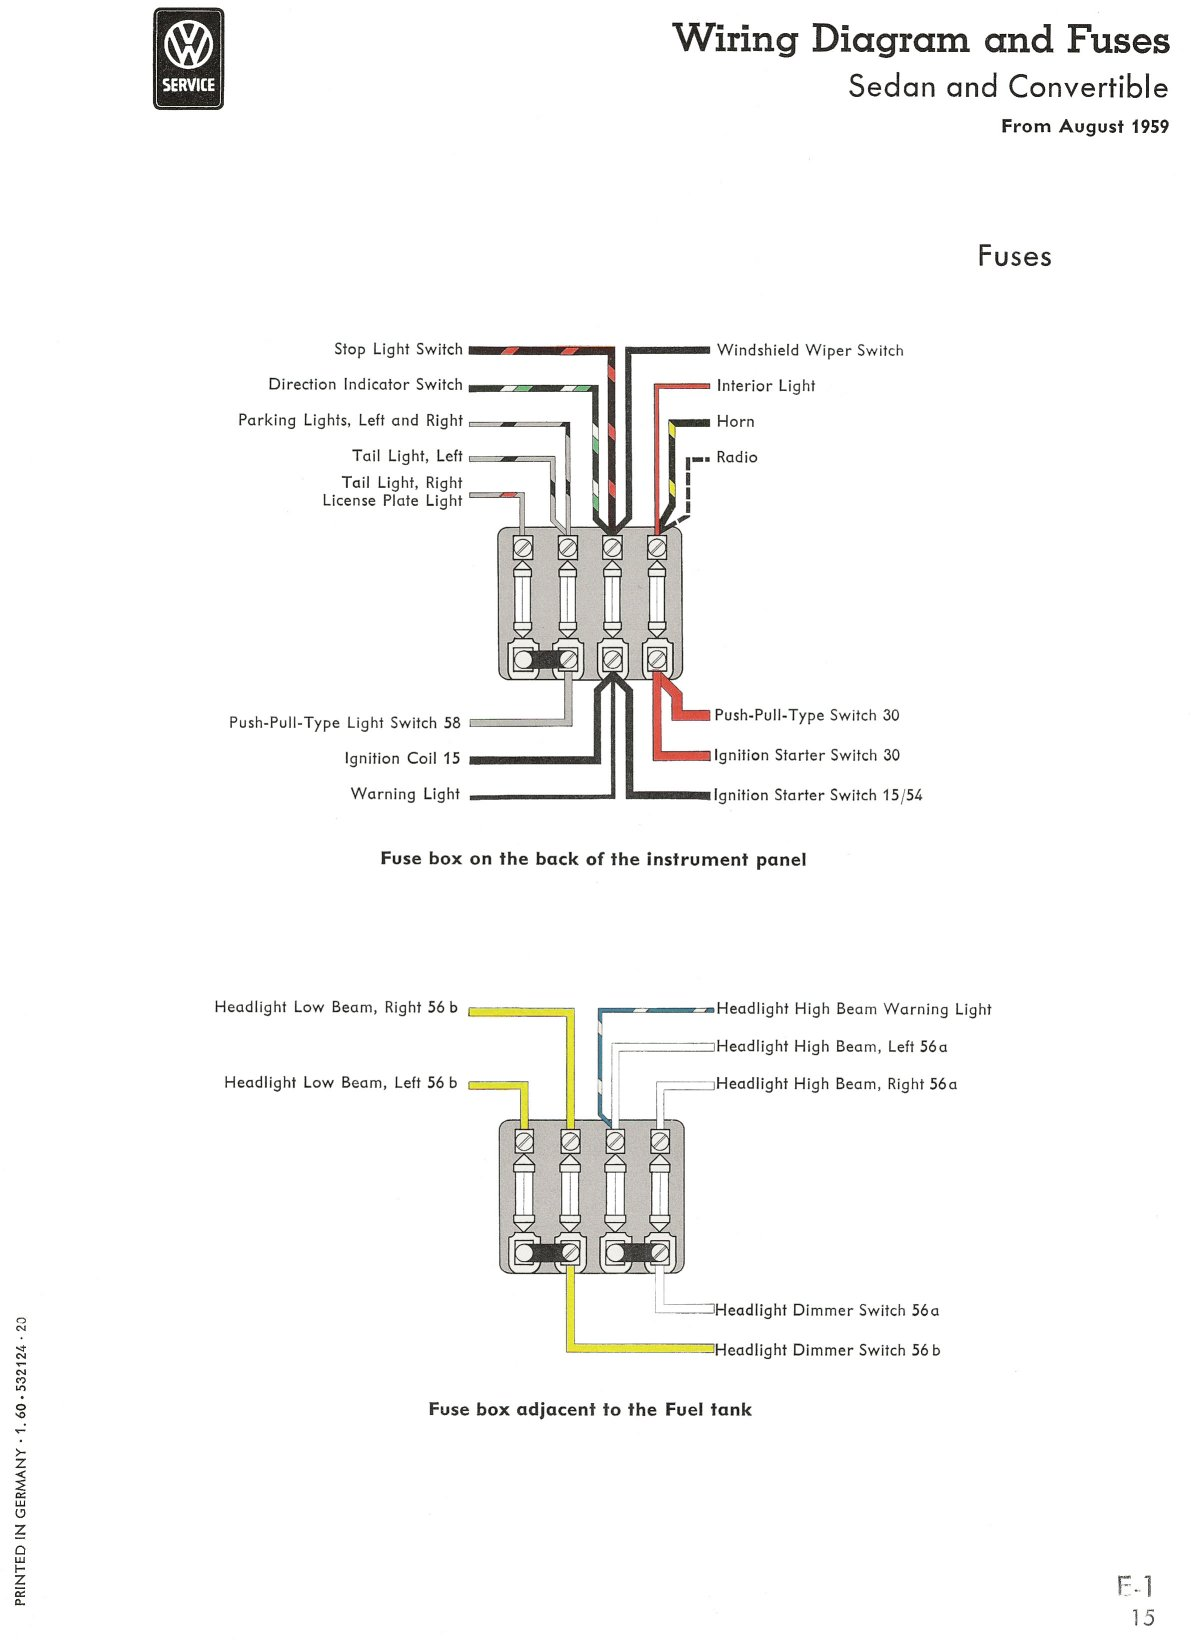 Highbeam Wiring Diagram Peterbilt 2007 379 Thesamba Com Type 1 Diagramshighbeam 15